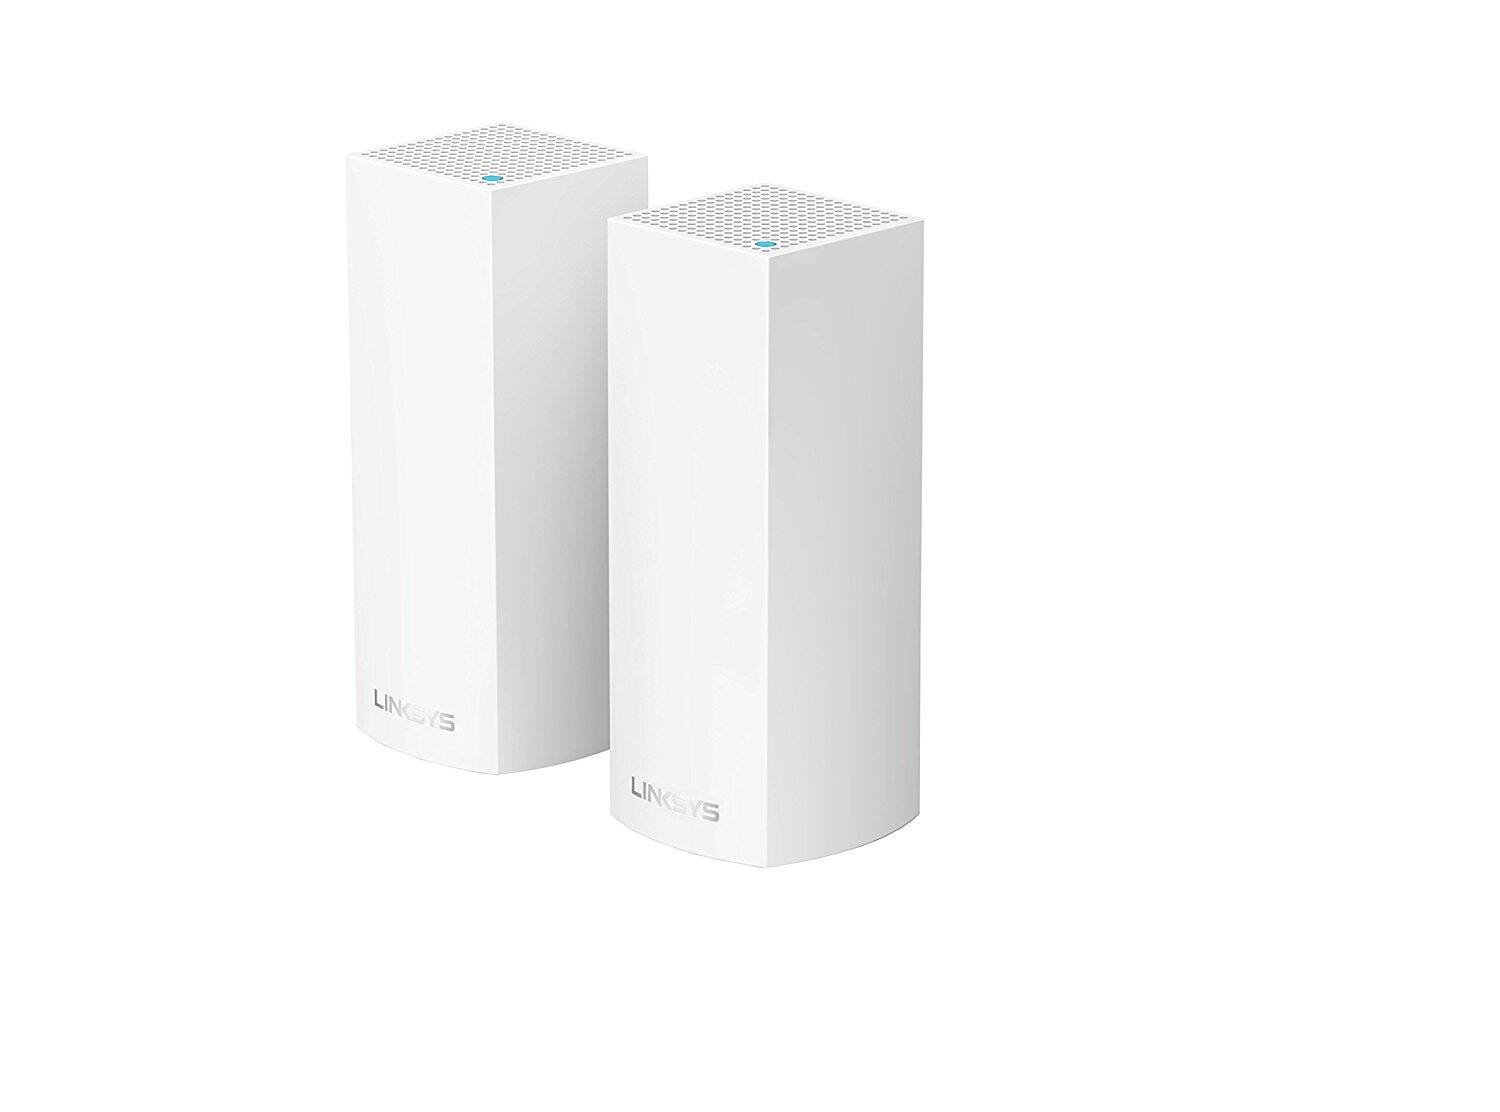 Linksys Velop Tri-band Whole Home WiFi Mesh System: 2-pack $249 (@Best Buy, Amazon) or $279 (@Fry's, NO SALES TAX)